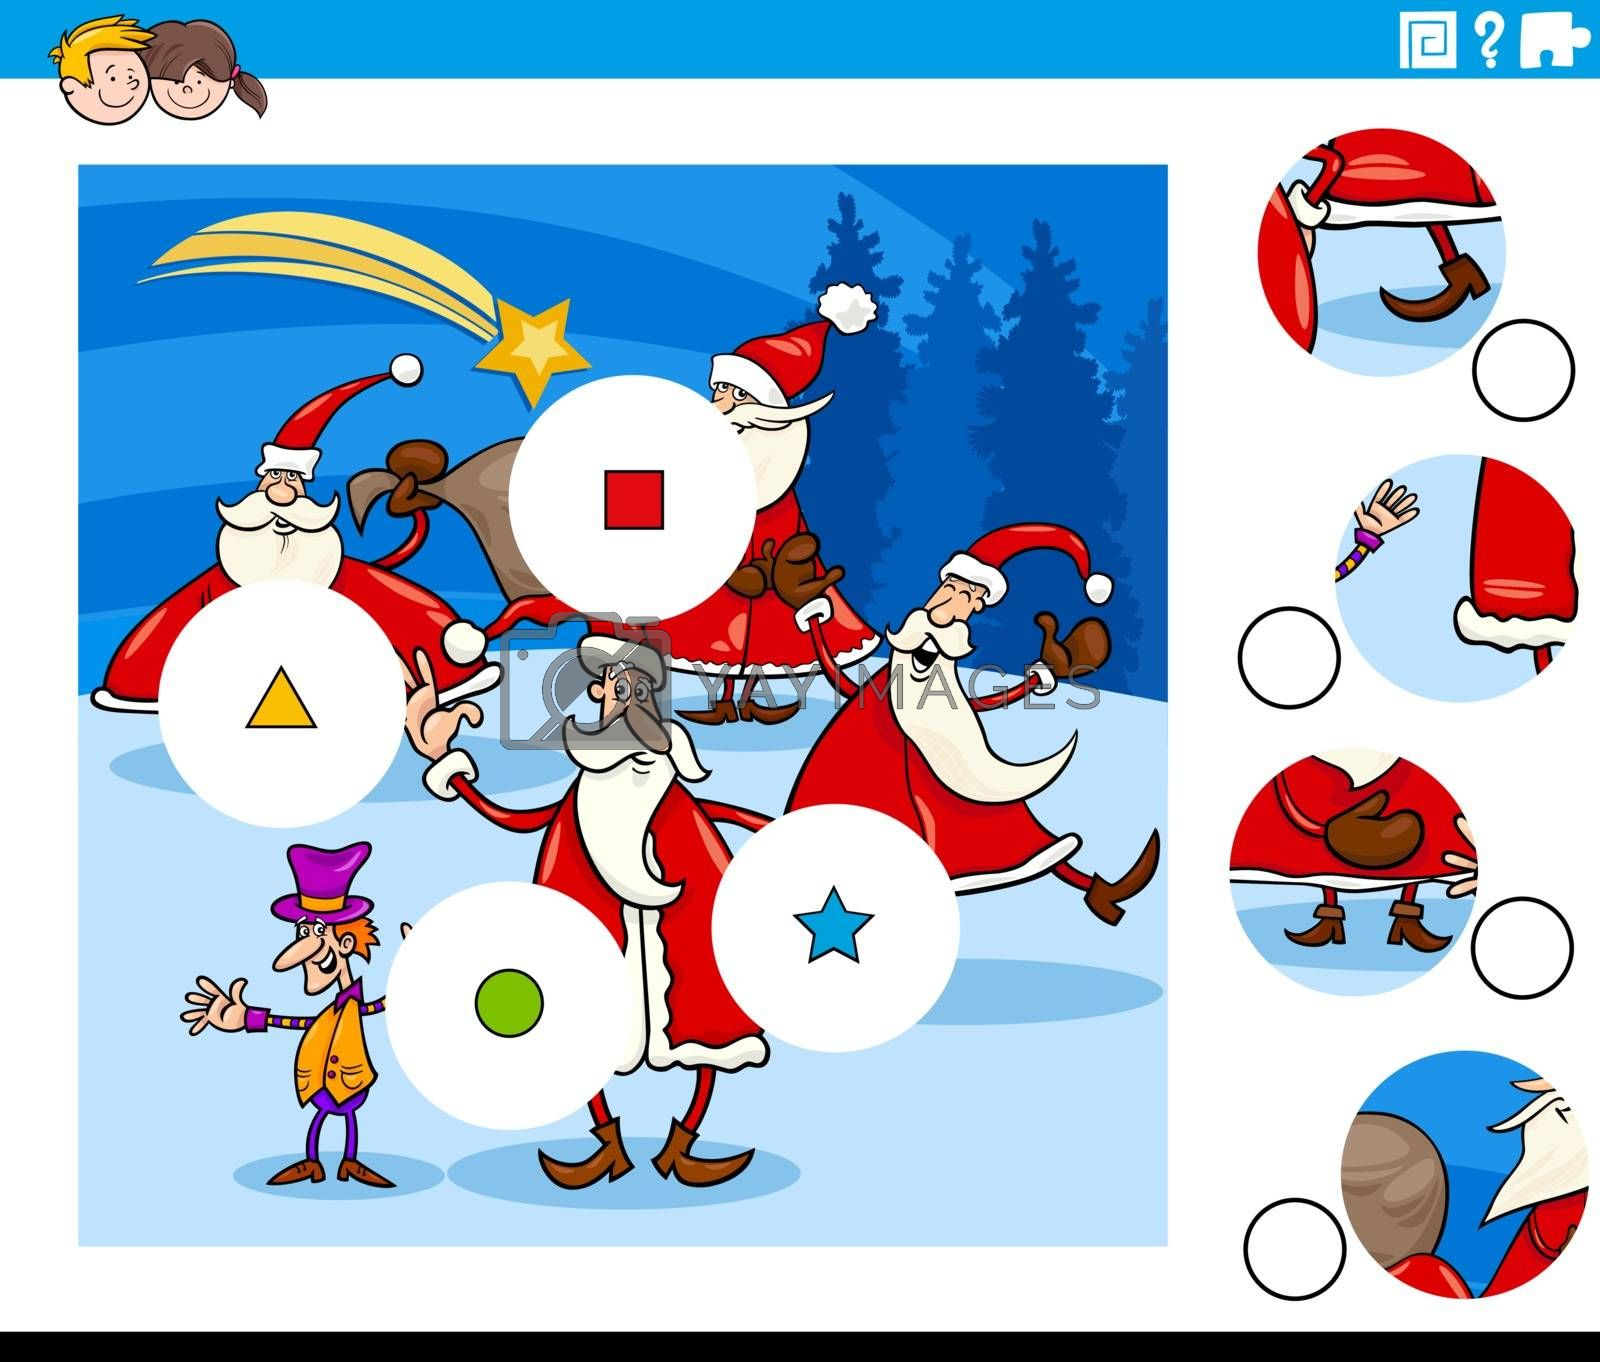 Cartoon Illustration of Educational Match the Pieces Jigsaw Puzzle Game for Children with Santa and Christmas Characters Group